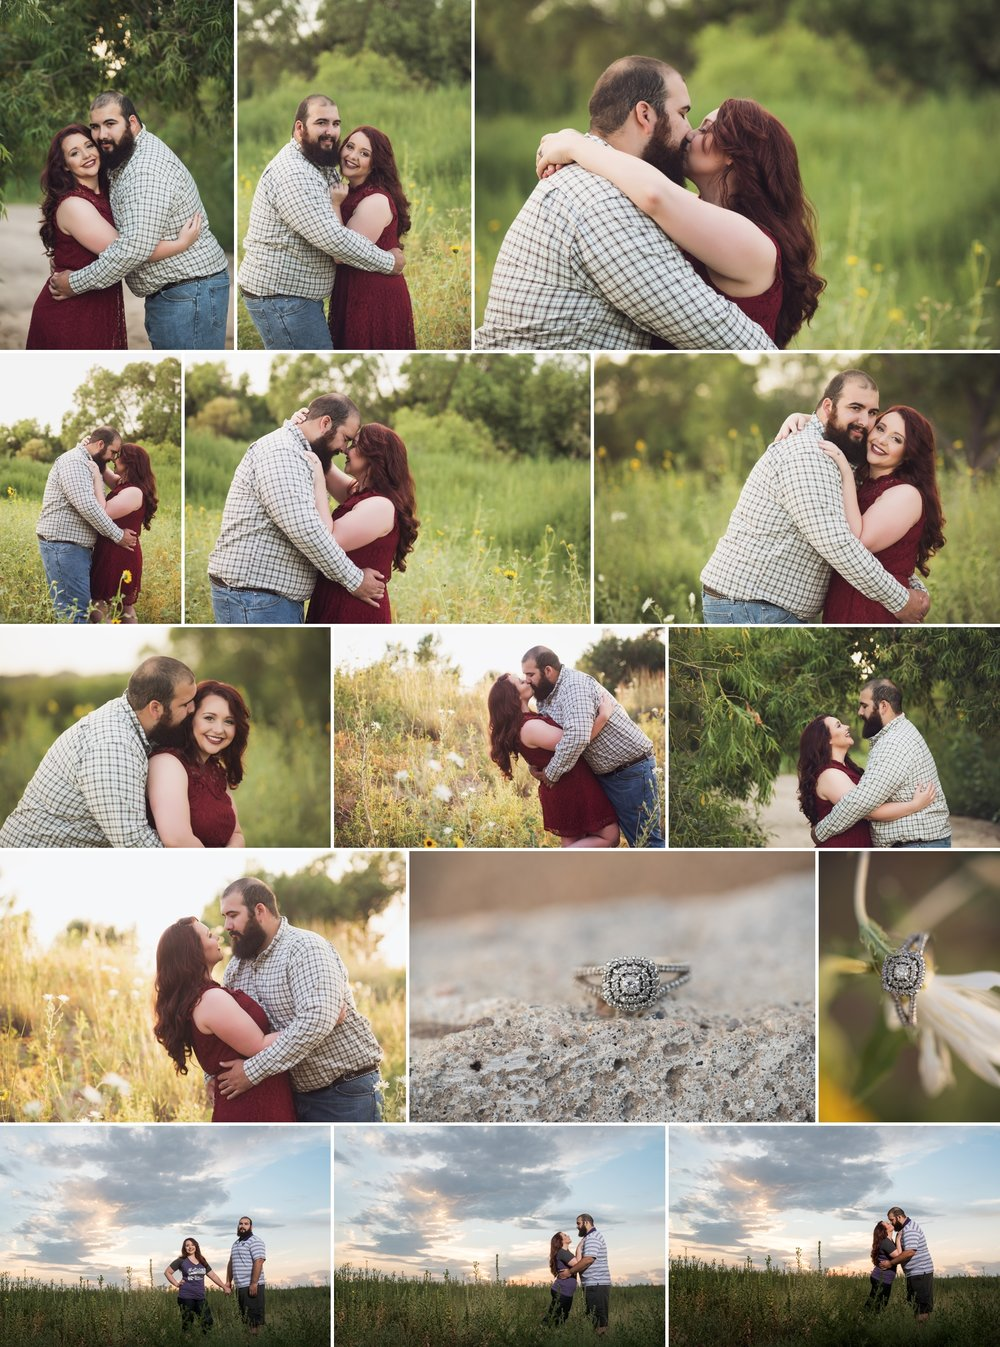 southwest-kansas-engagement-photography 1.jpg